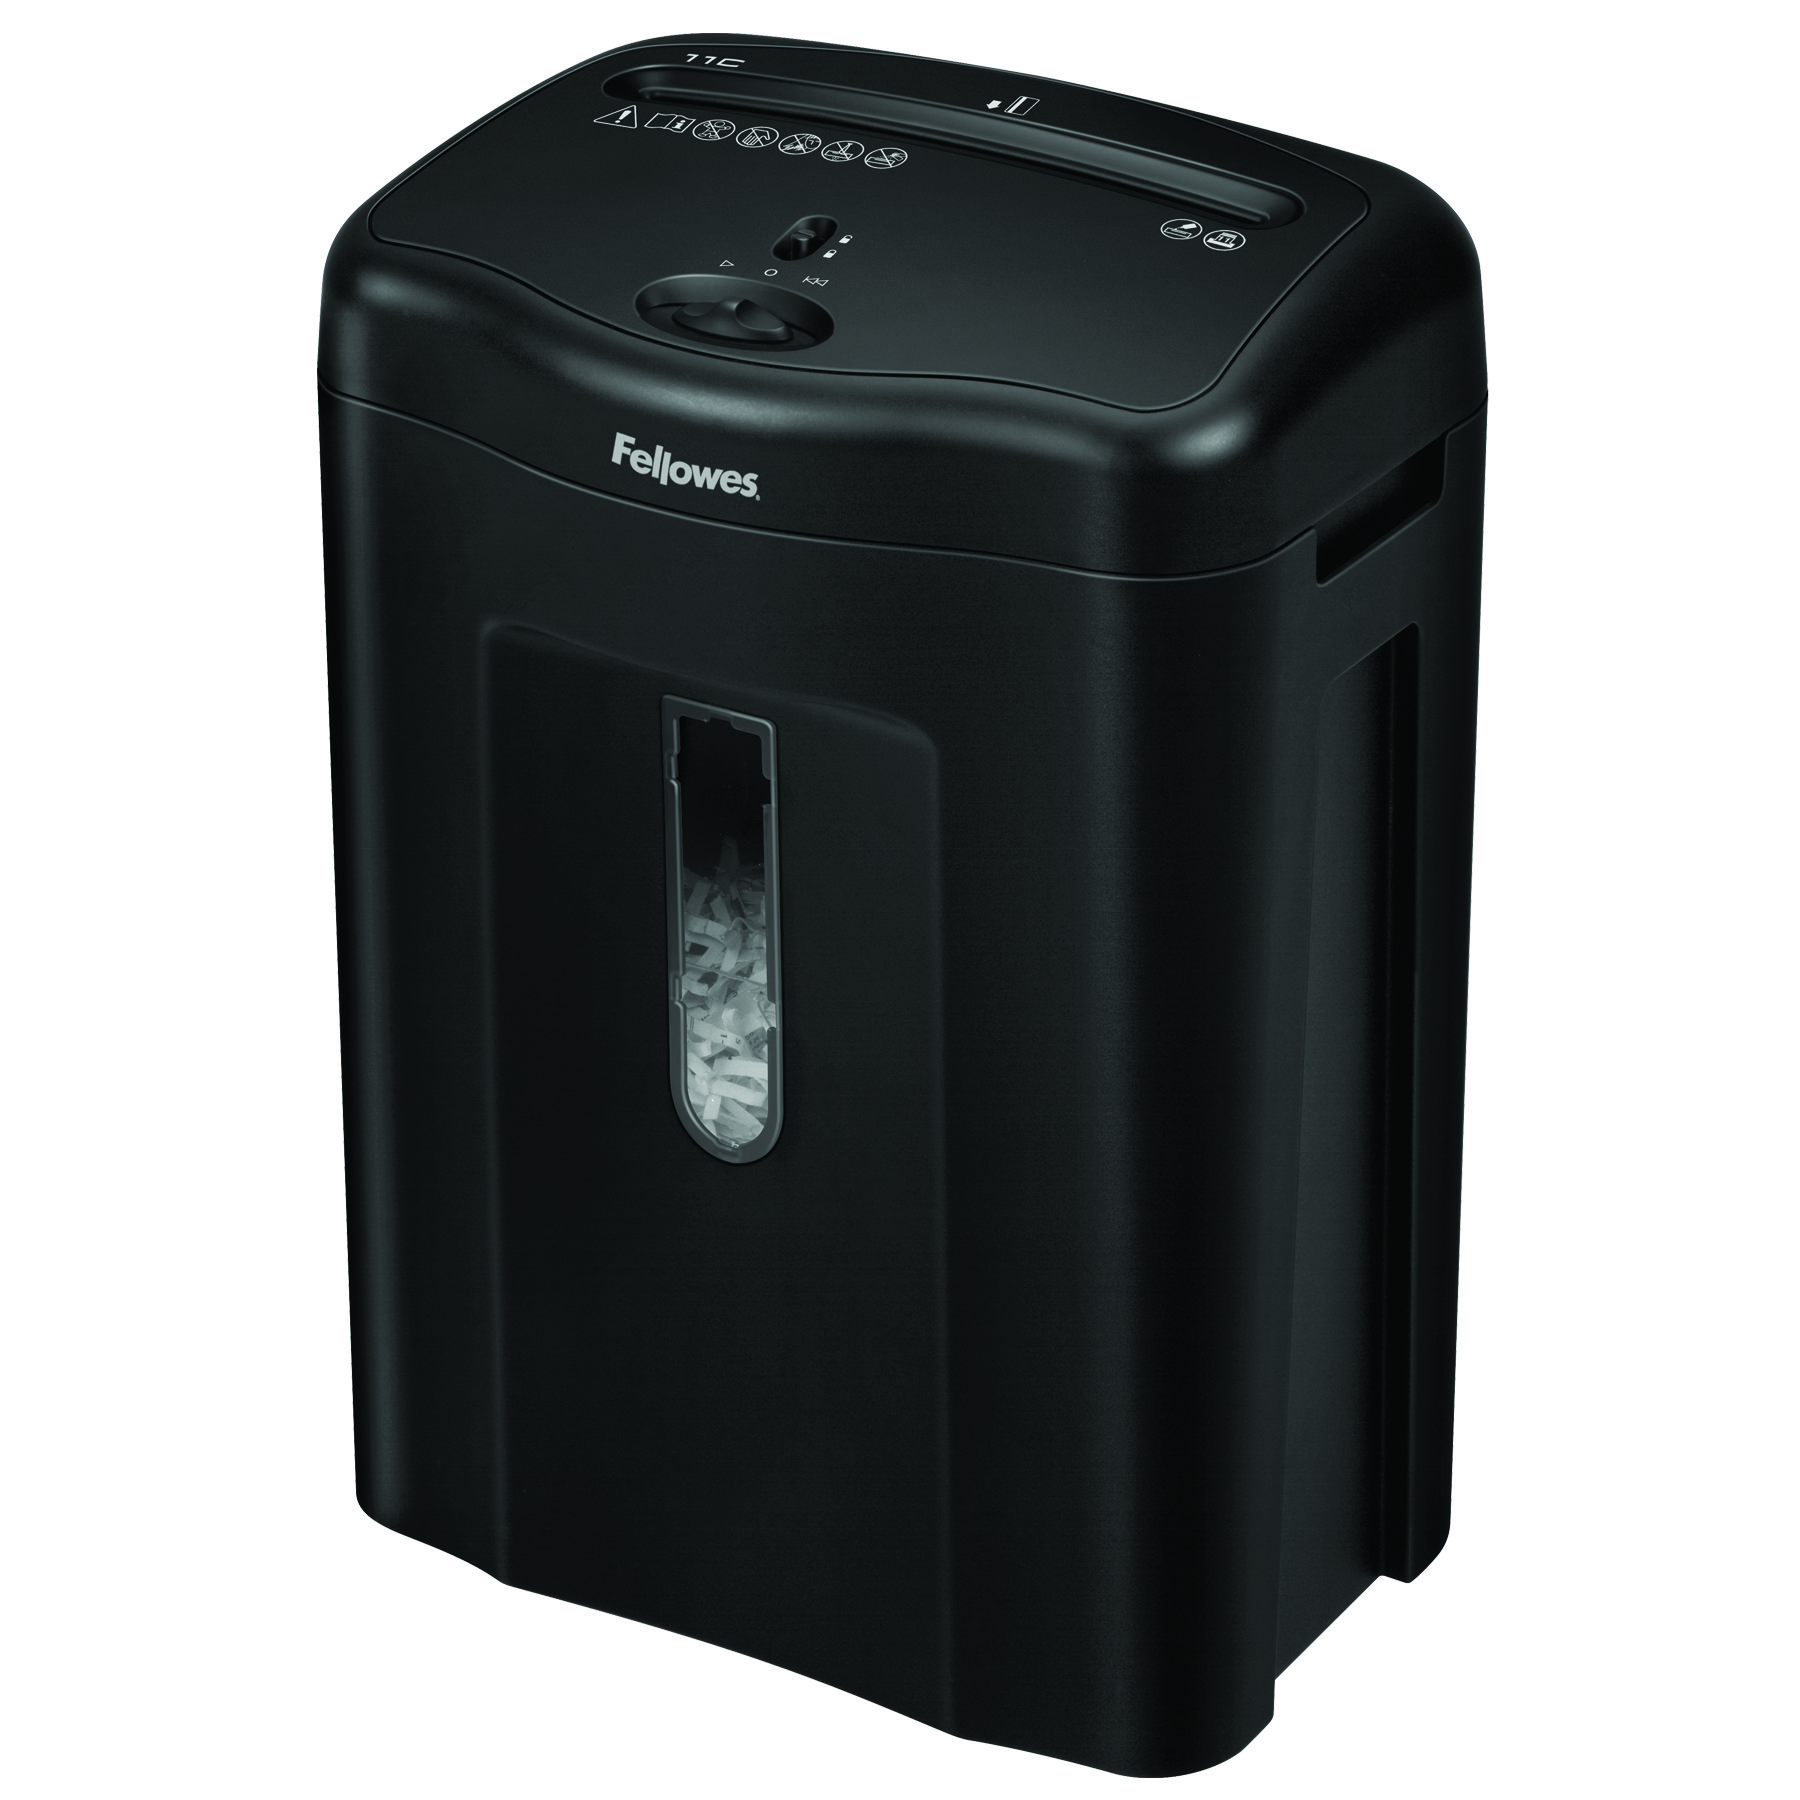 Shredders Fellowes Powershred 11C Cross Cut Shredder